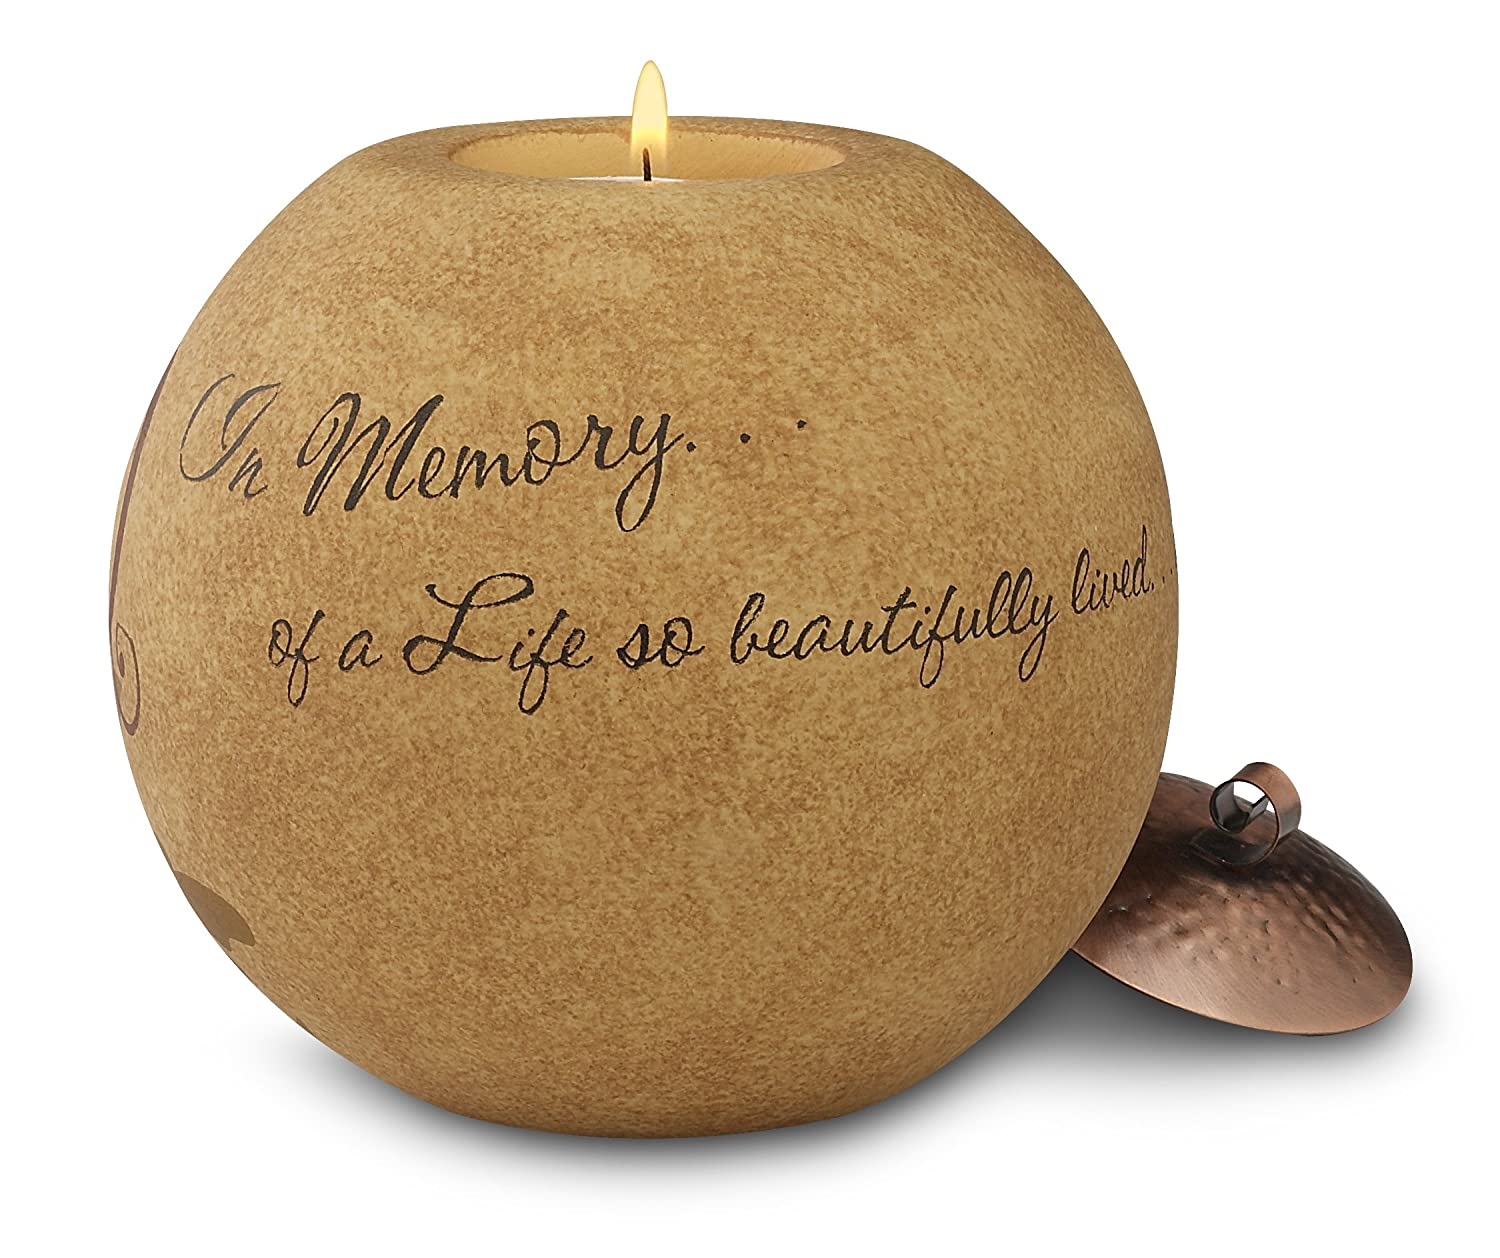 Bereavement Gifts Other Than Flowers Lamoureph Blog